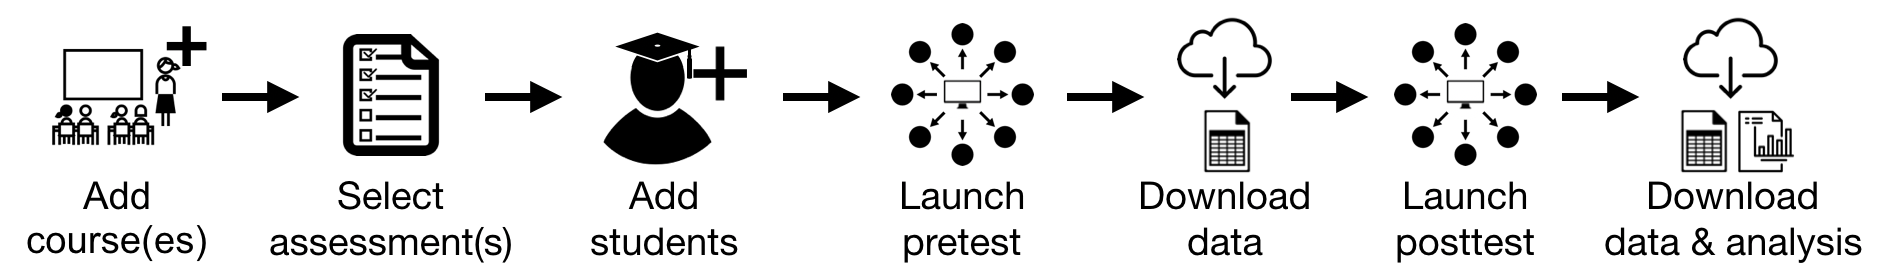 A visual representation of LASSO workflow.